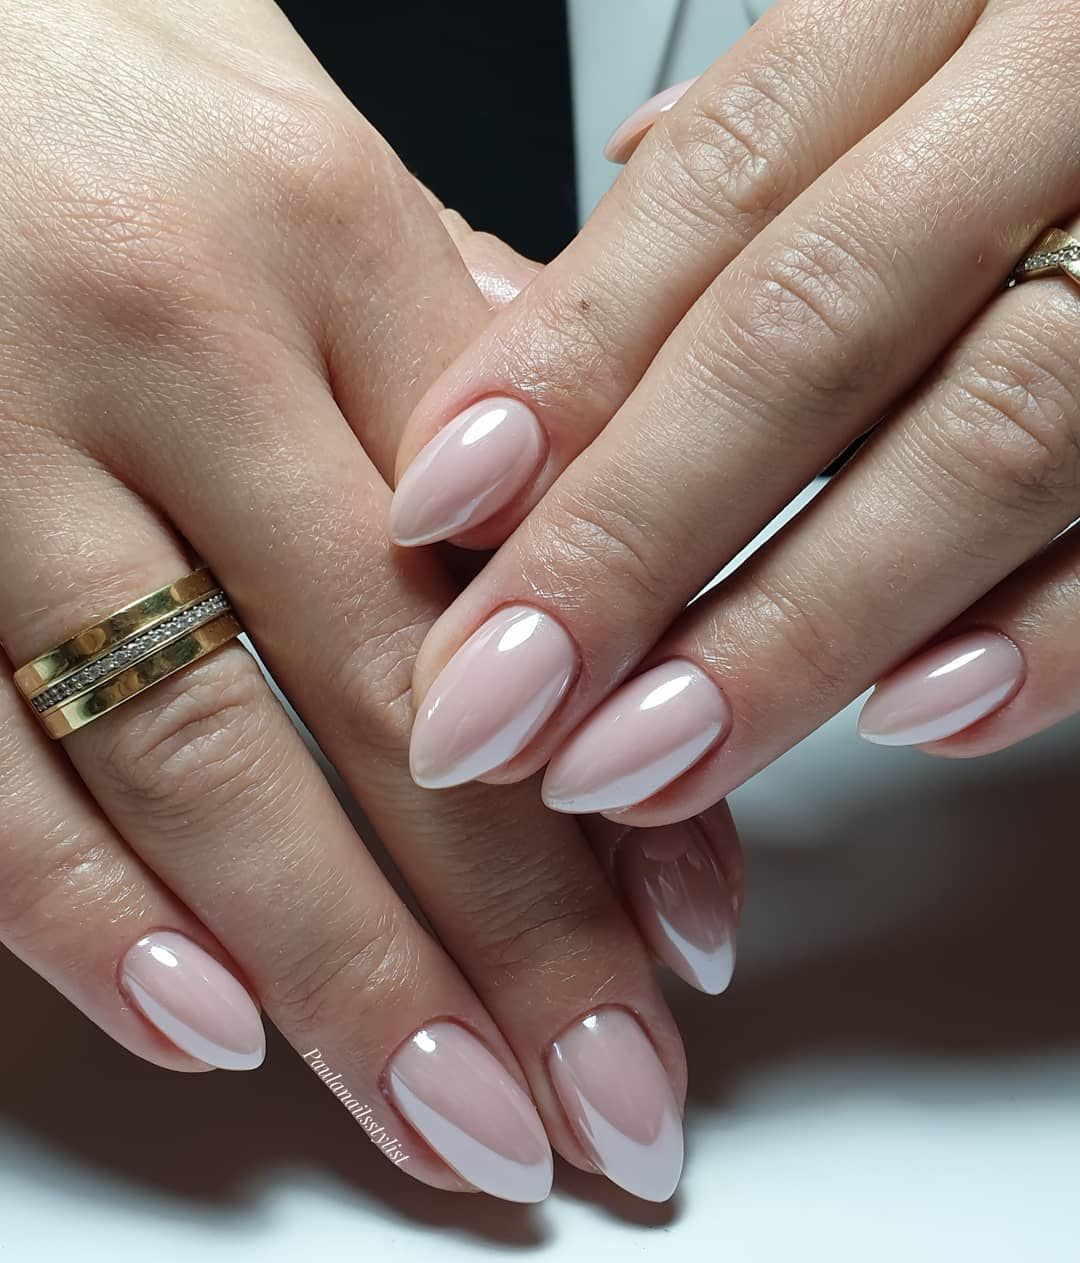 100+ Latest Nail Trends for Winter 2020 Nail Art Design